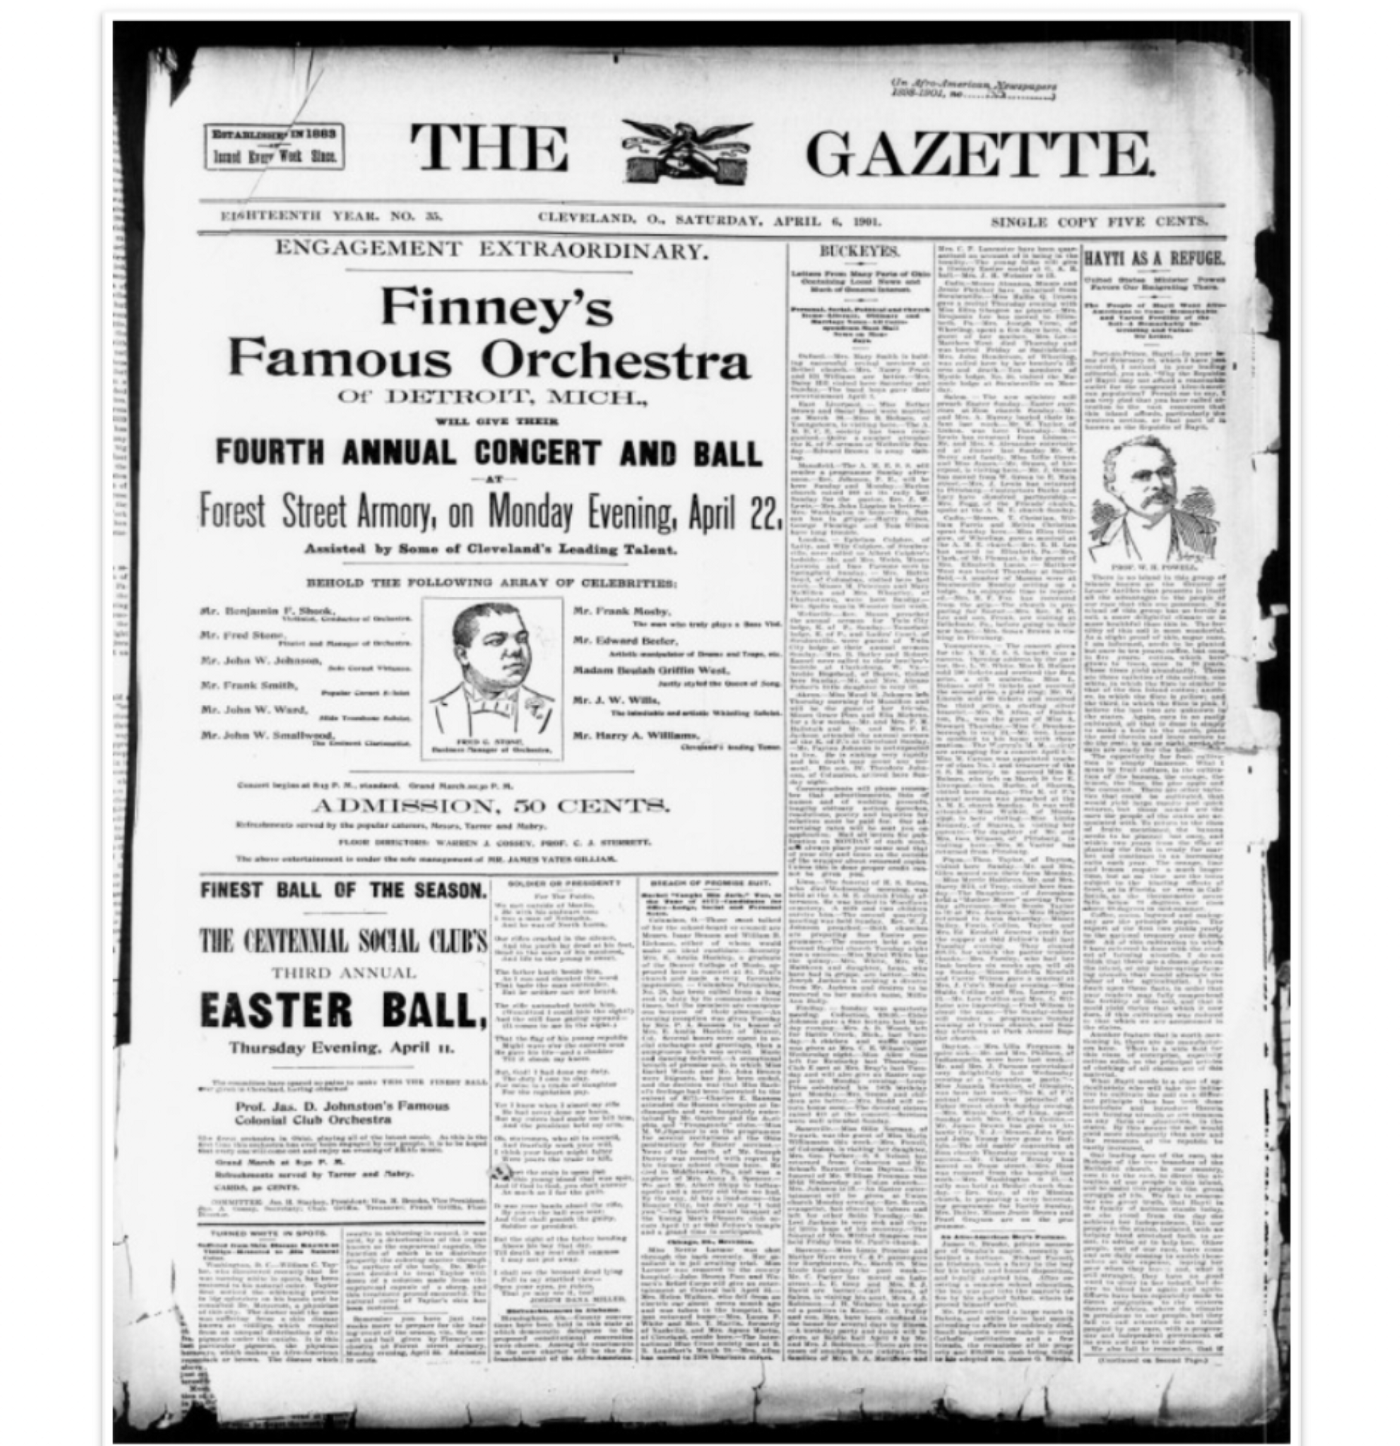 Front page of Cleveland Gazette from Saturday, April 6, 1901